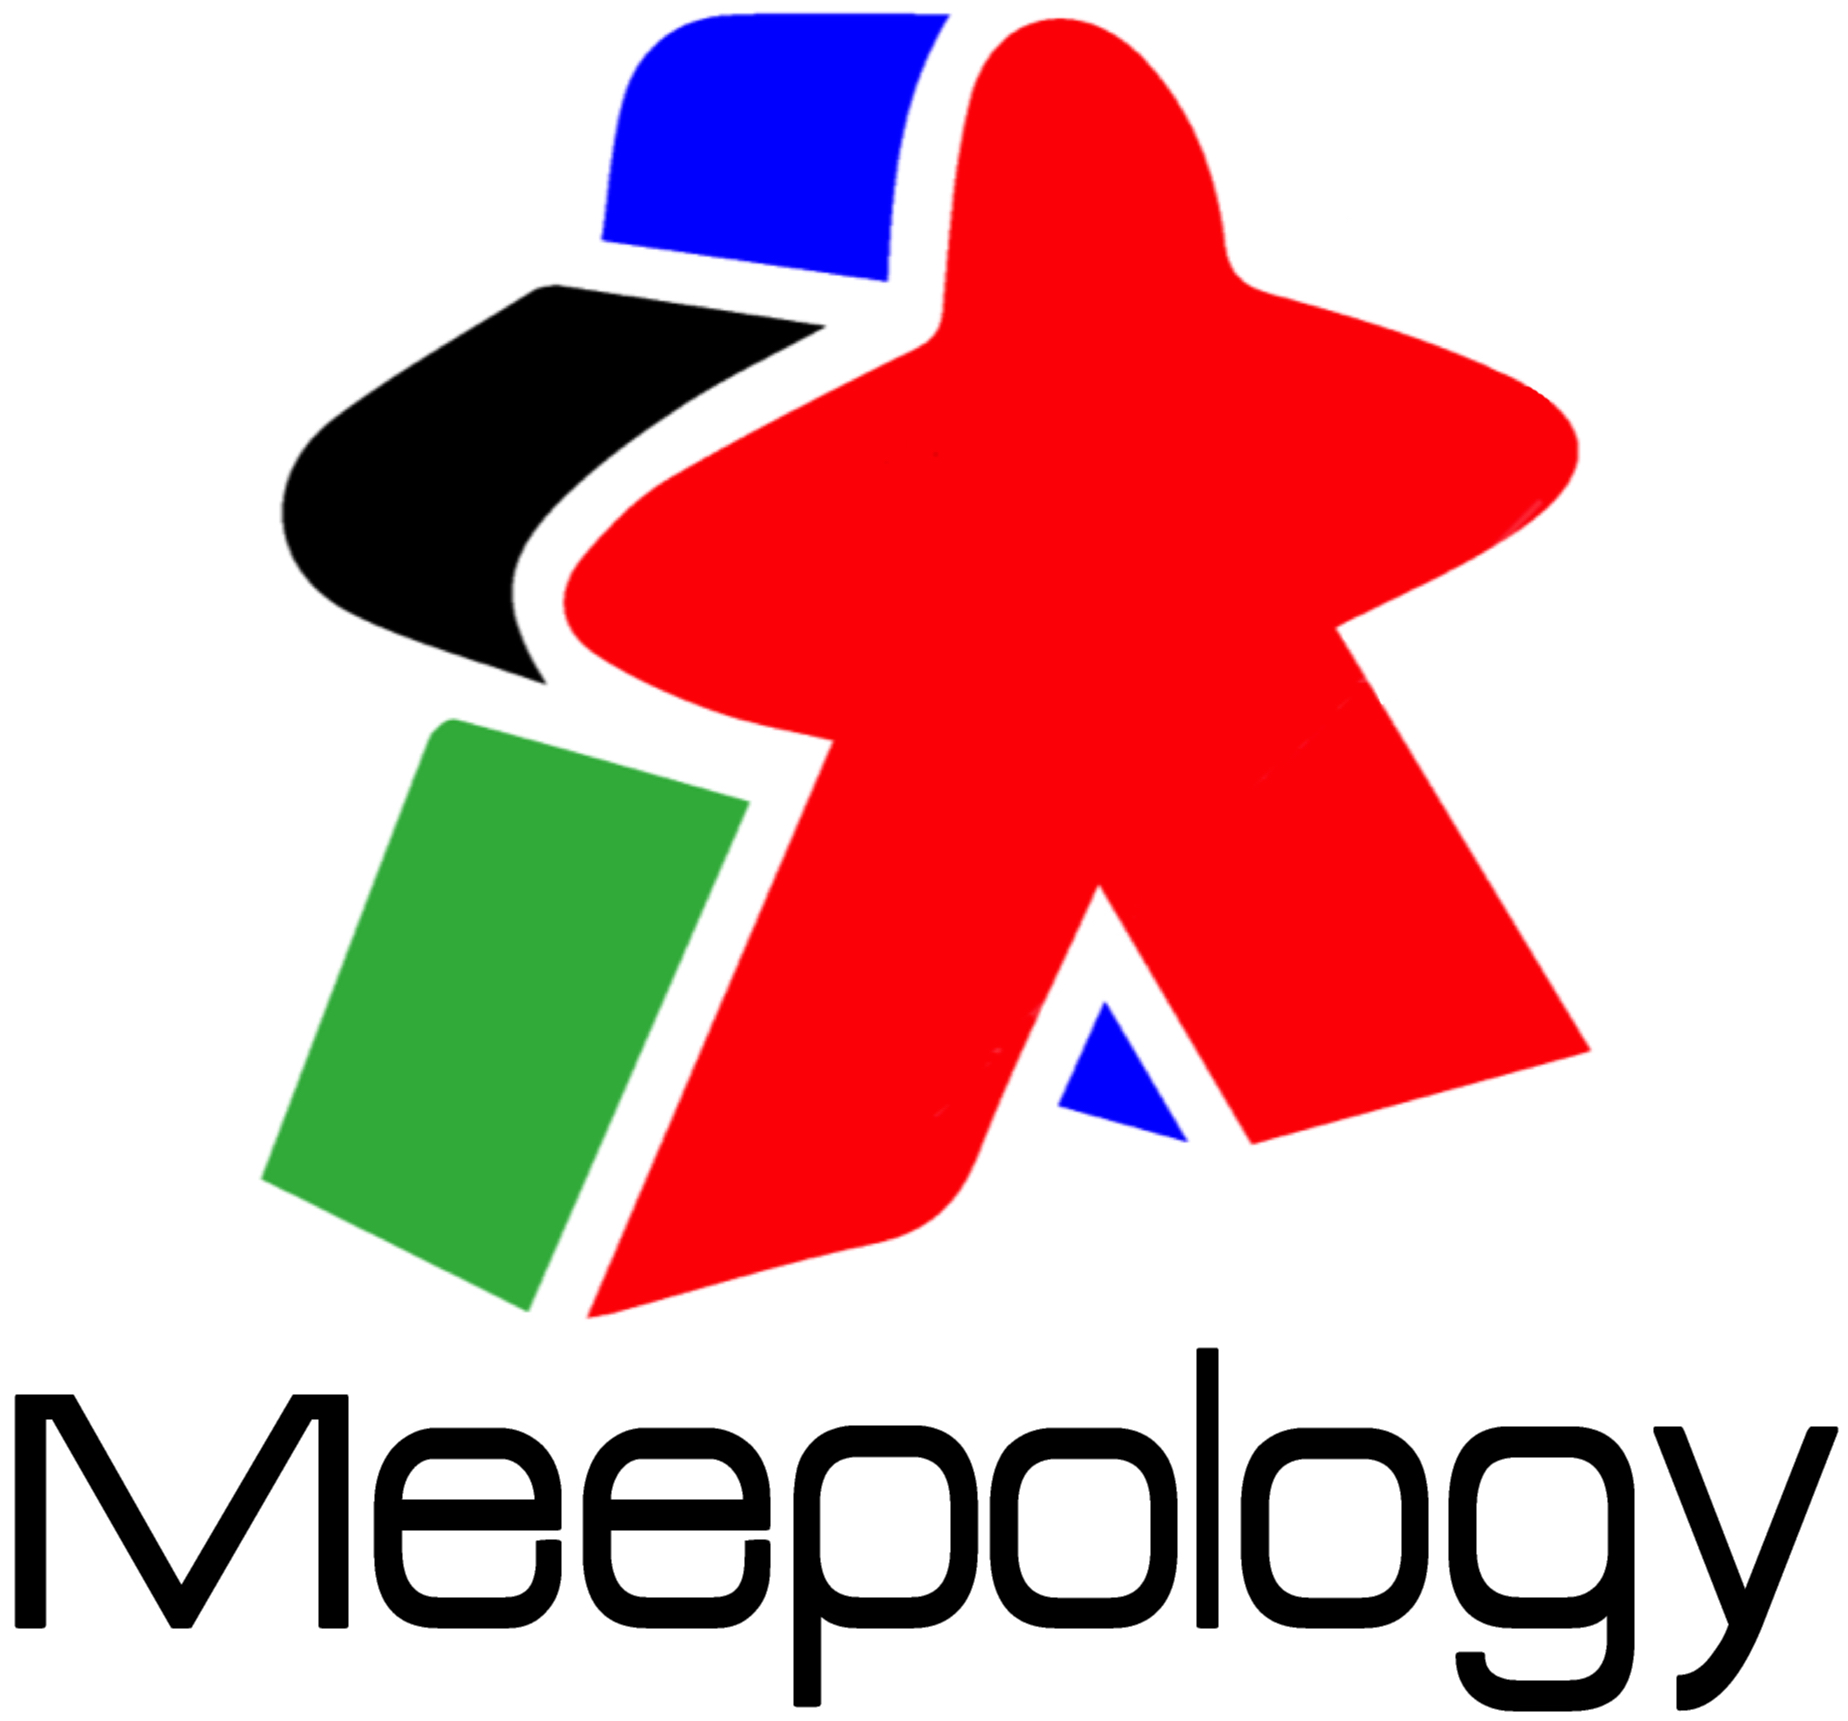 MEEPOLOGY - Game Your Personality! Launches online with a request to take action and join in on the process.